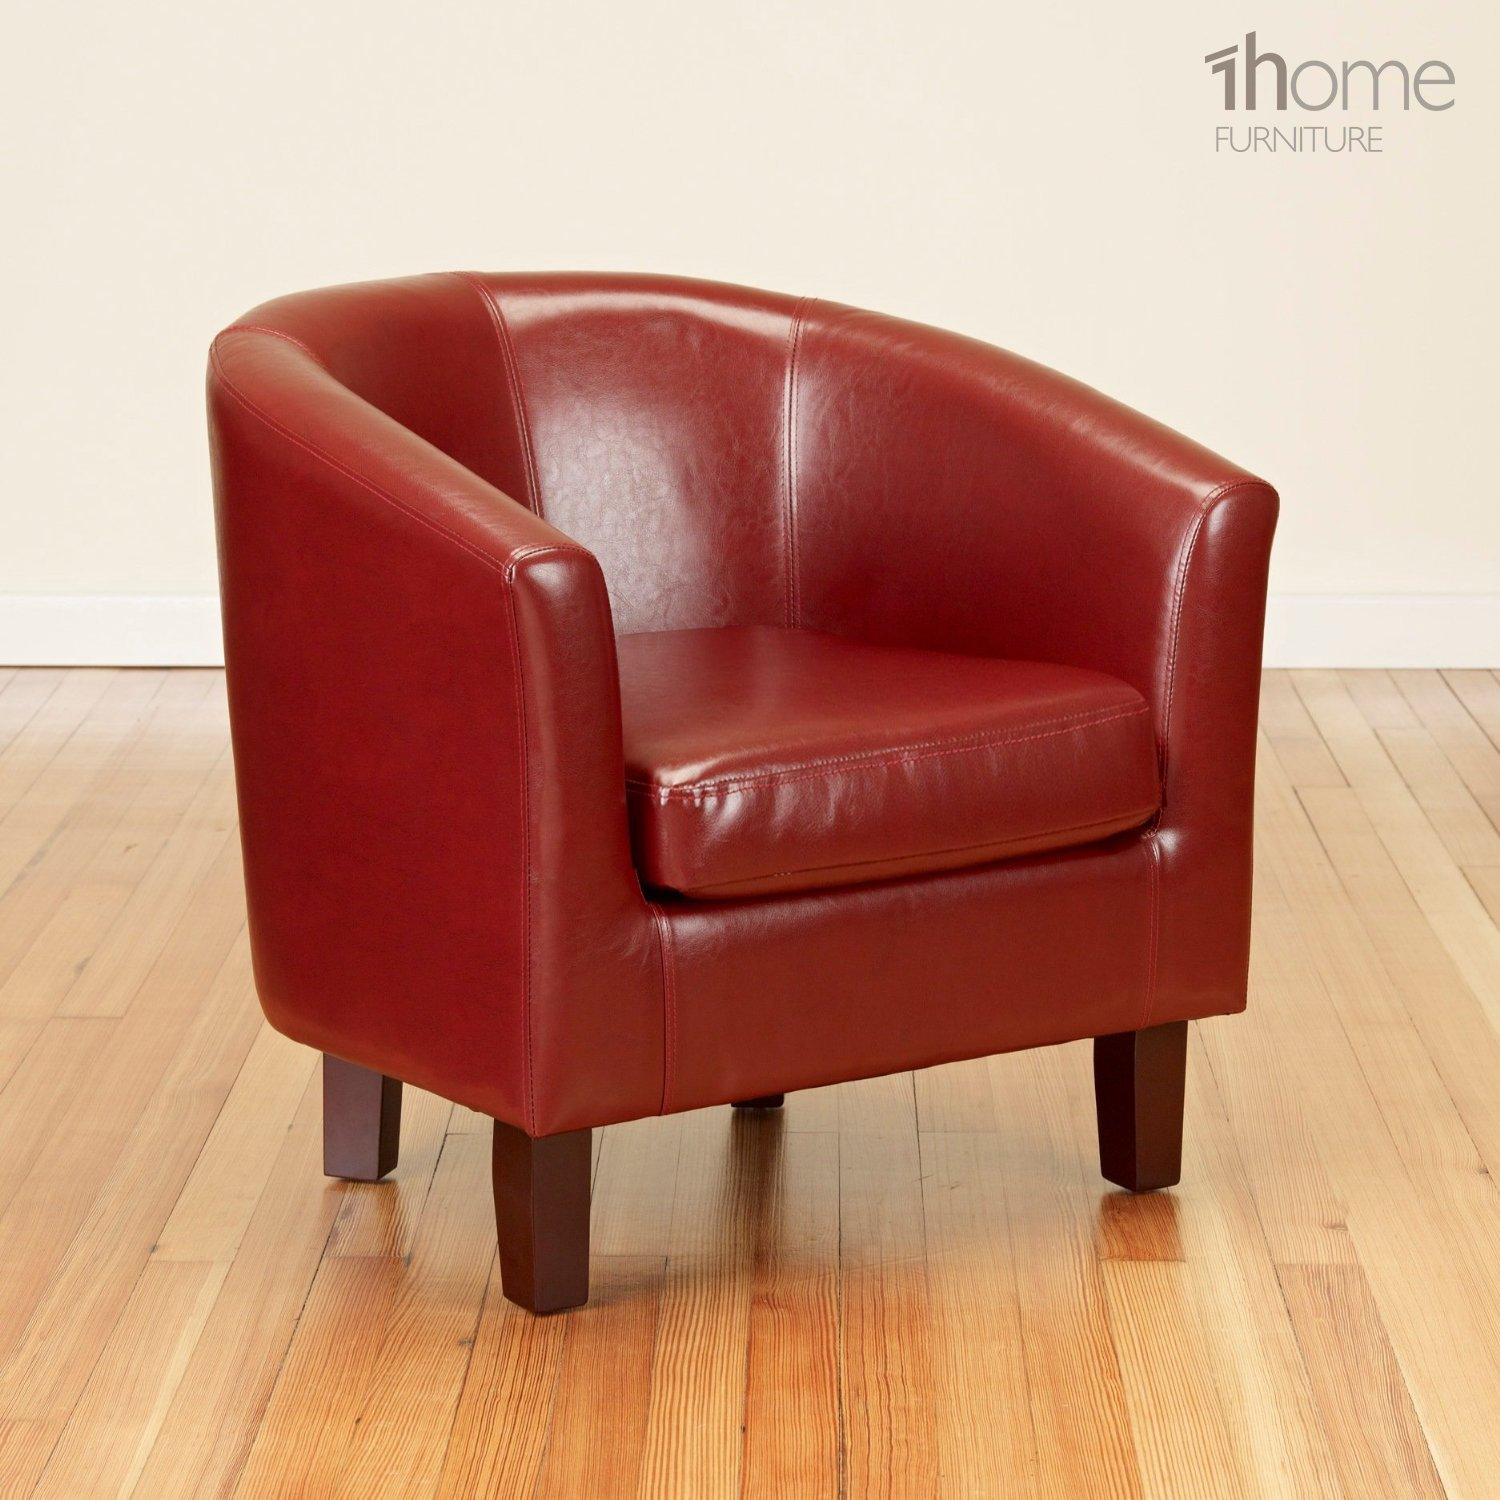 1home Bonded Leather Tub Chair Armchair Dining Living Room Office ...